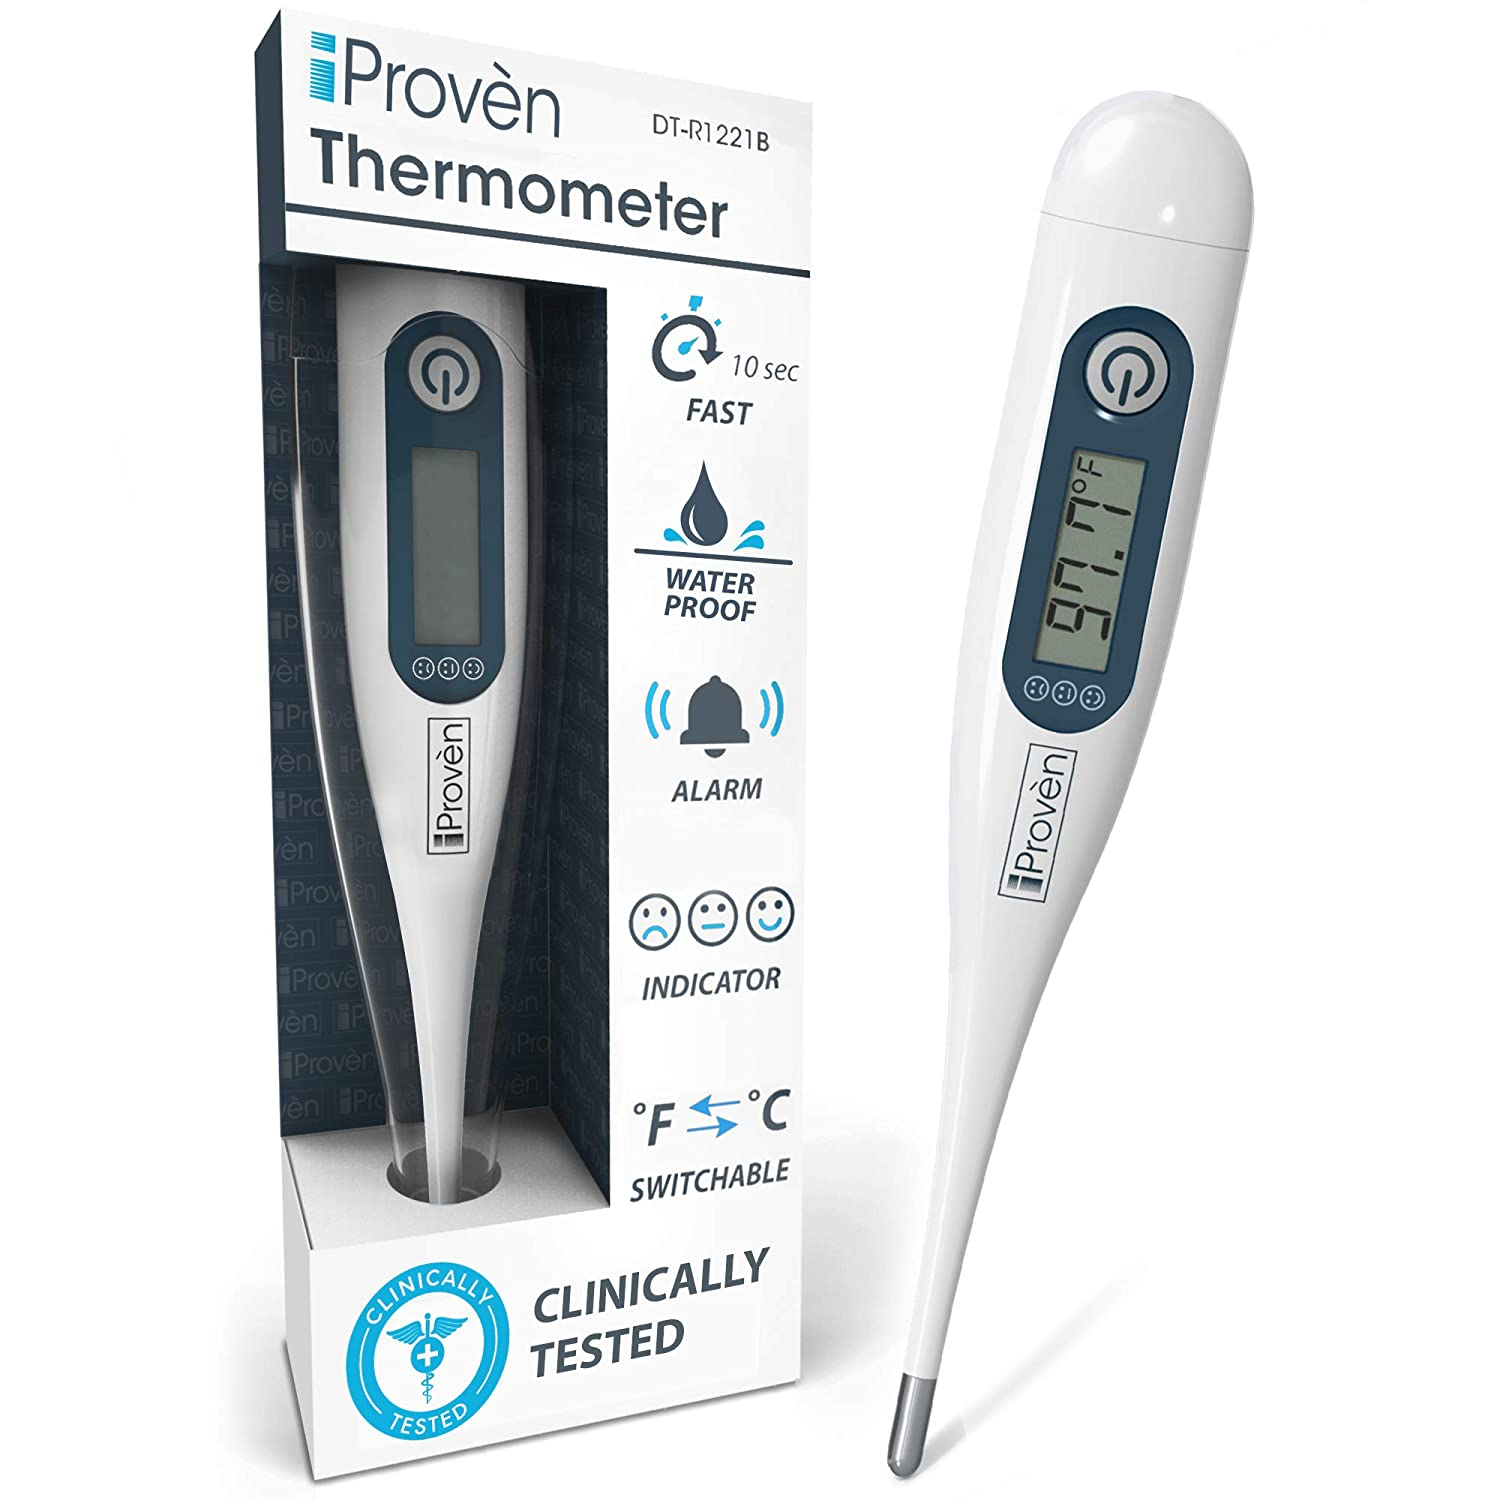 Baby Thermometer for Fever – Medical Digital Thermometer for Fever – Rectal Thermometer for Babies Oral Thermometer for Kids and Adults -DT-R1221B with Fever Indicator – 2019